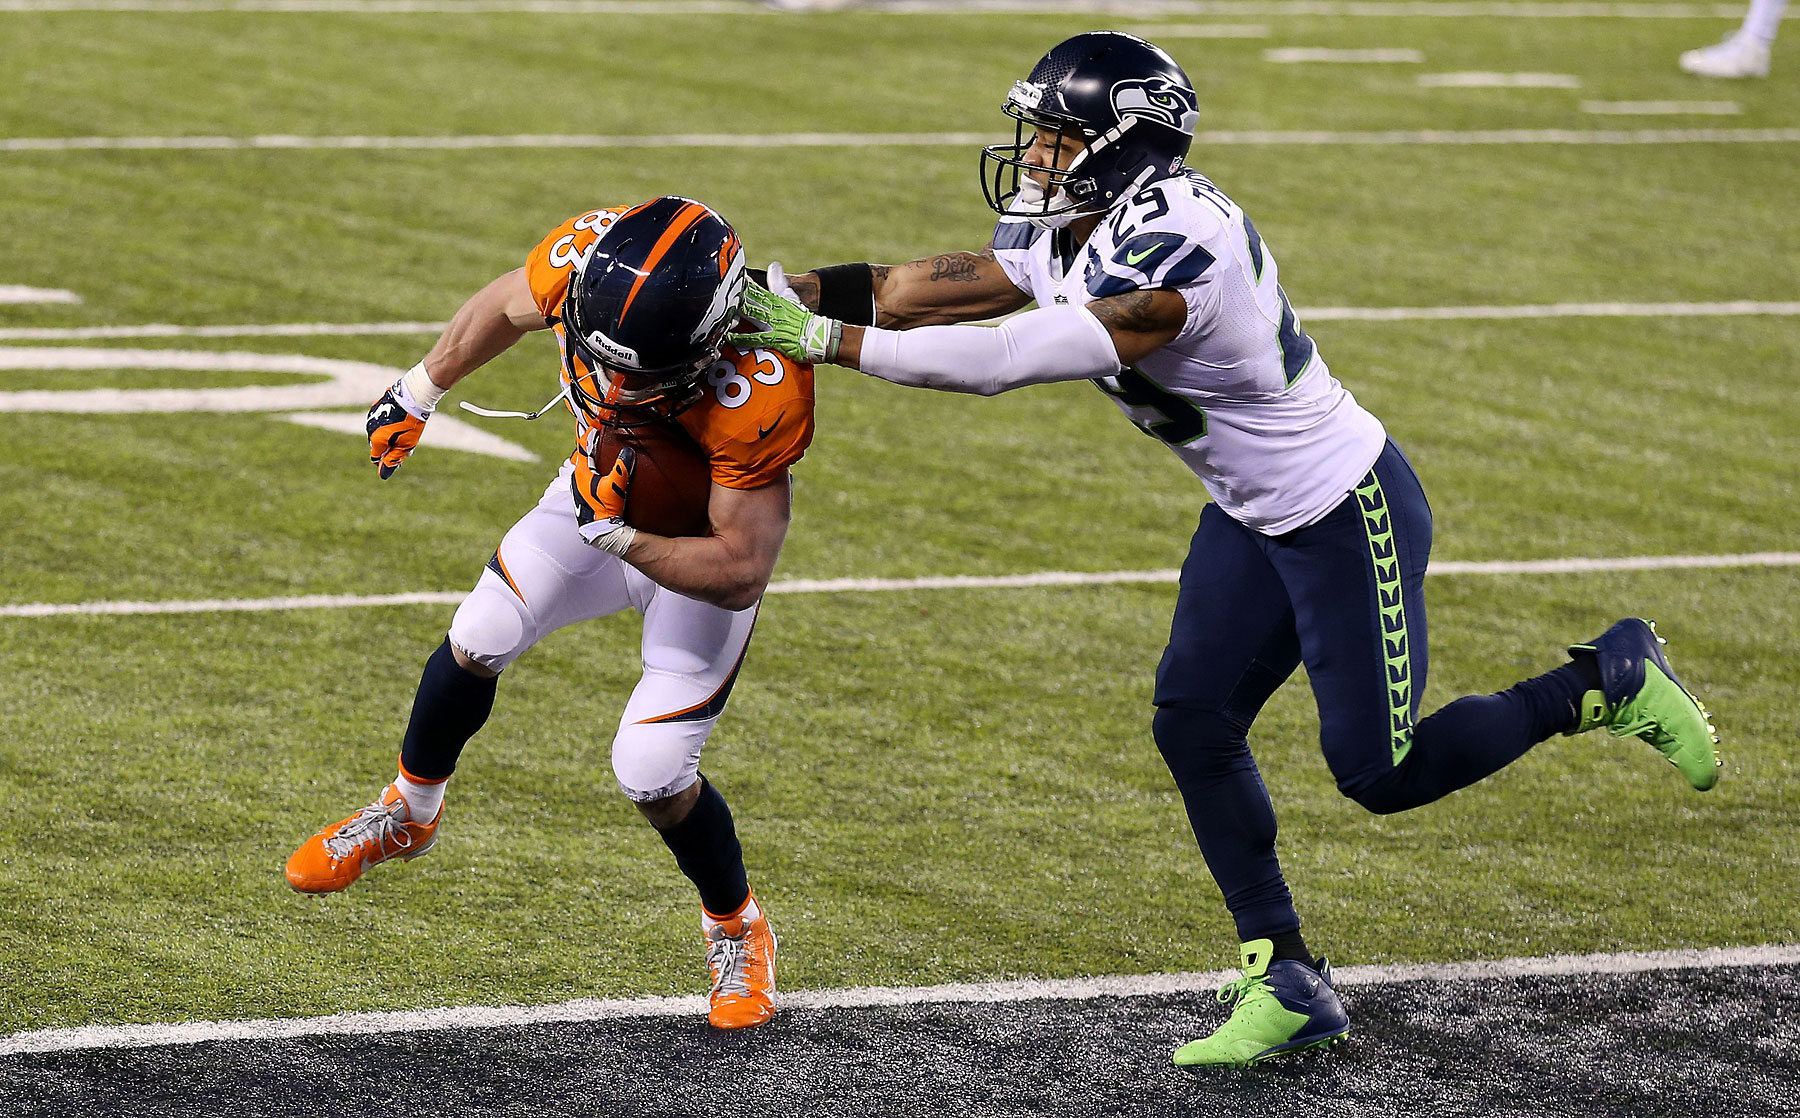 Wide receiver Wes Welker of the Denver Broncos scores the two point conversion after touchdown by wide receiver Demaryius Thomas during the third quarter.